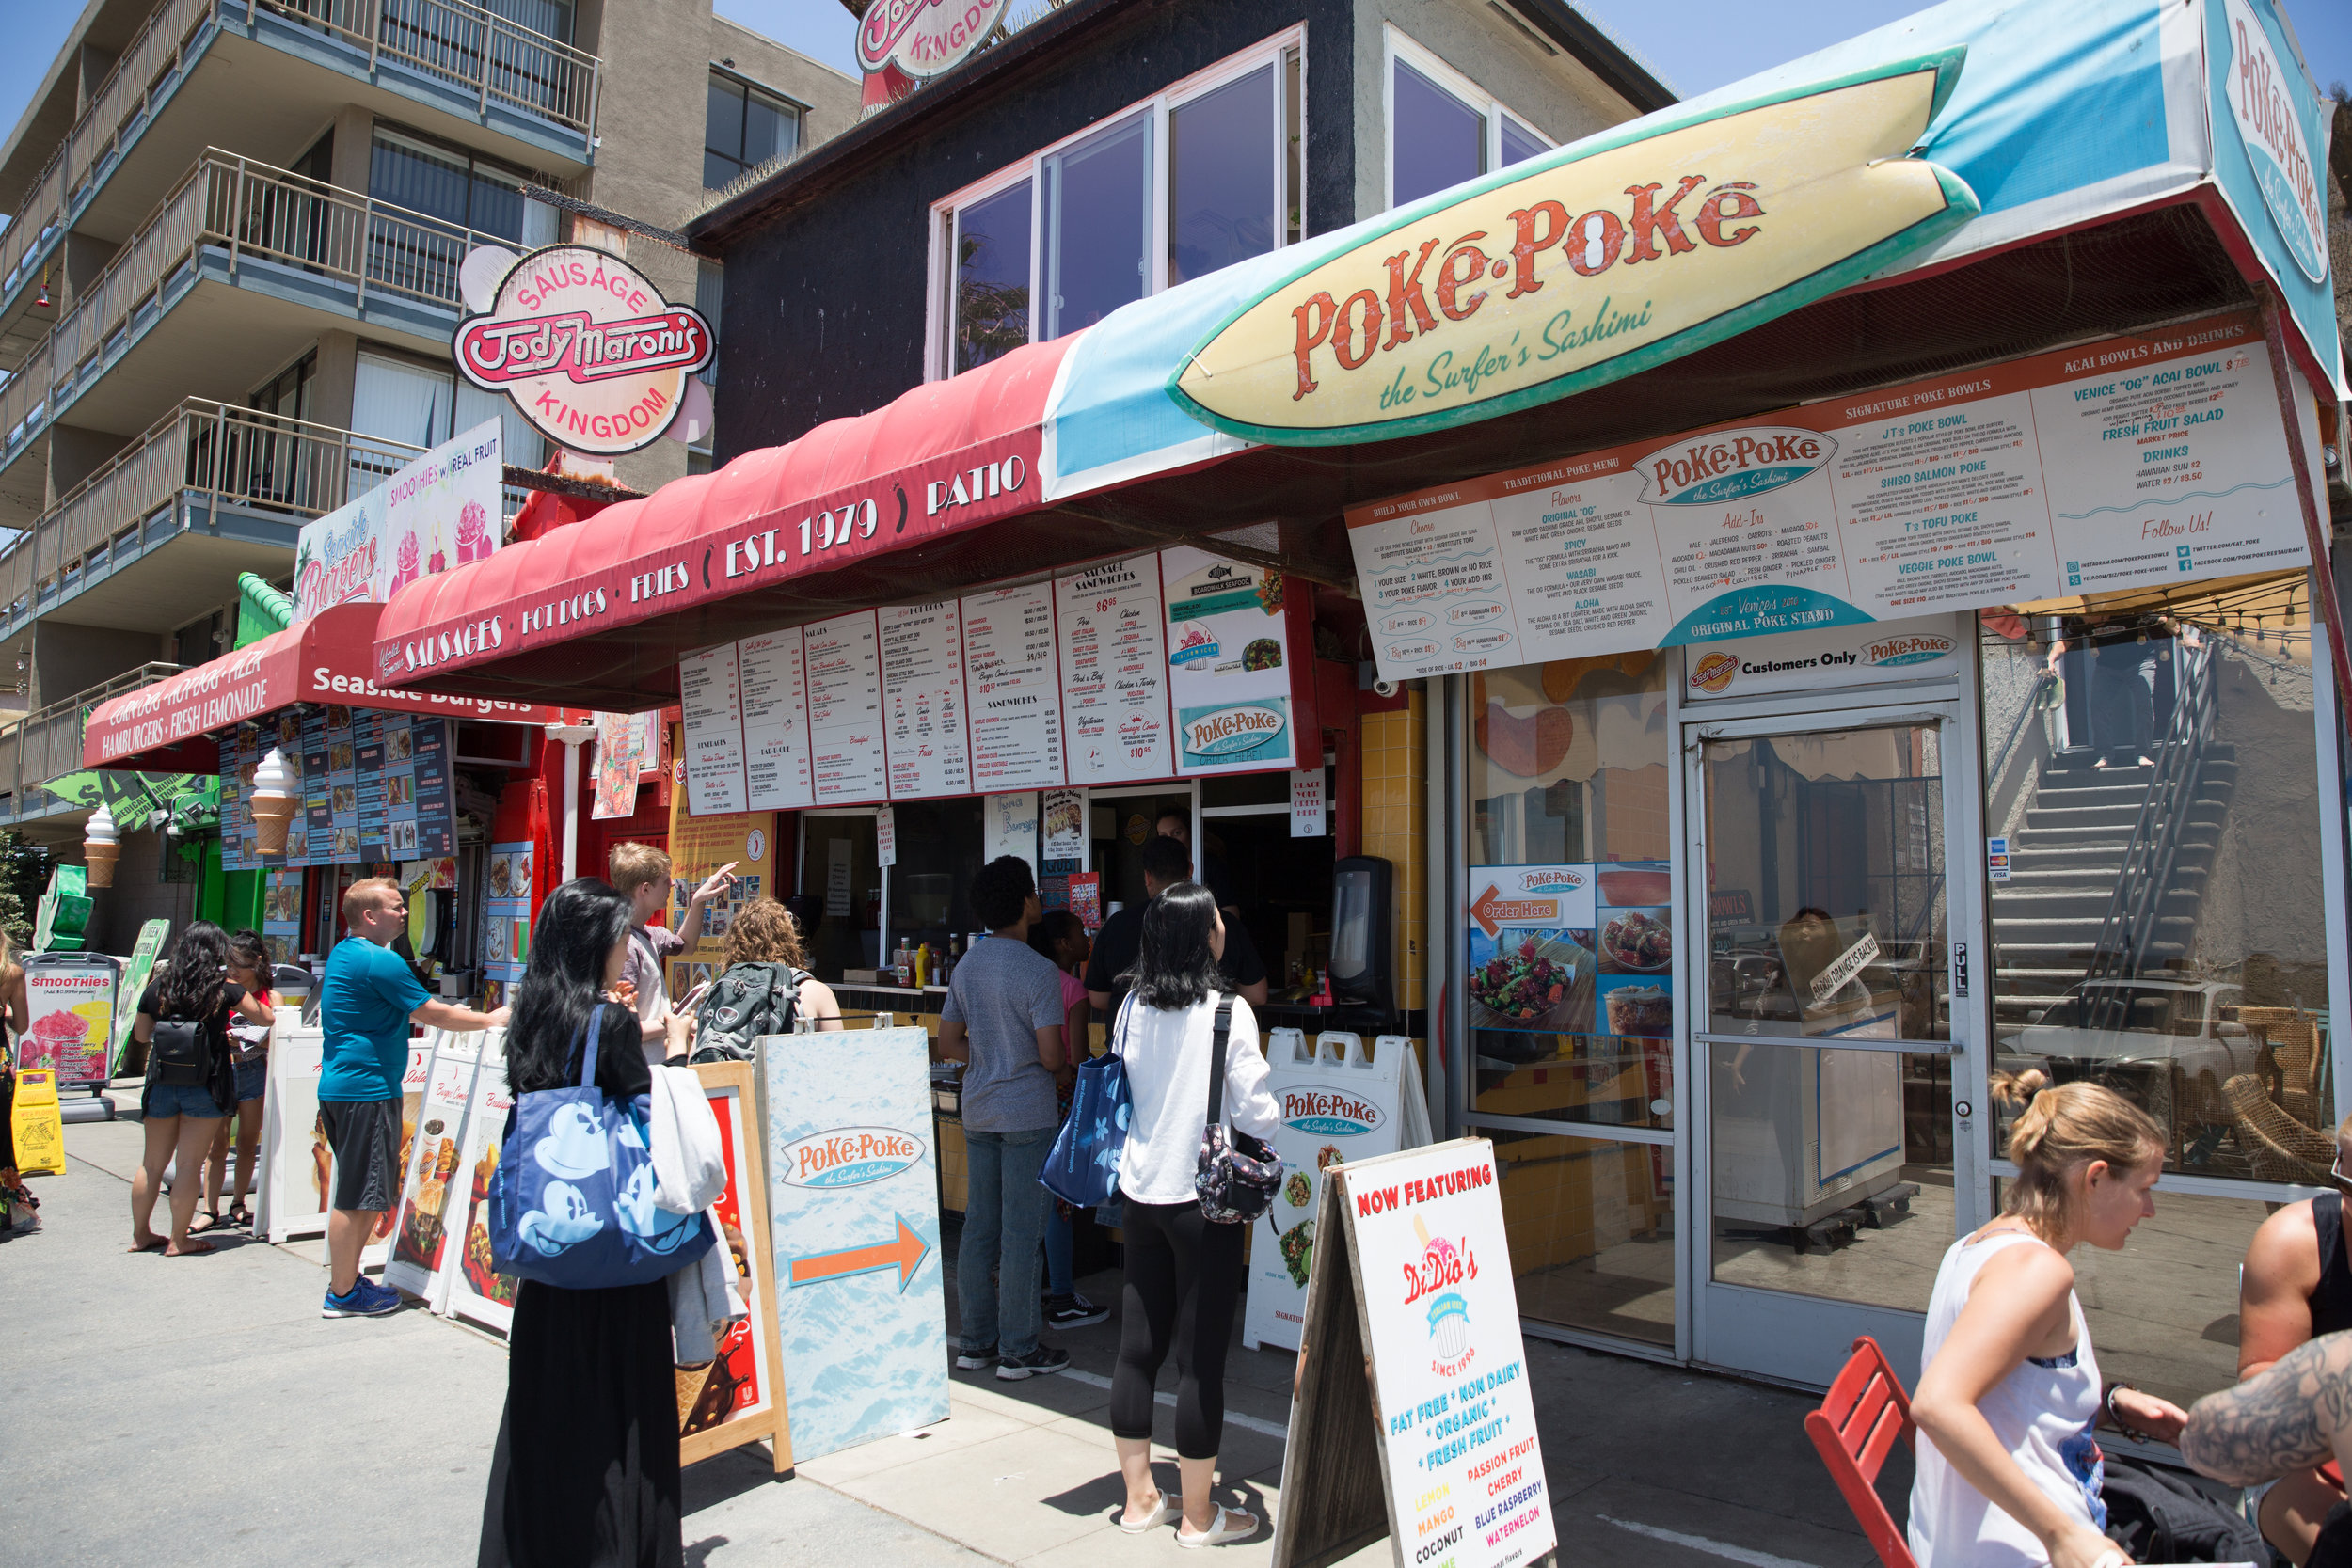 Poke-Poke is conveniently located directly on the Venice Boardwalk.